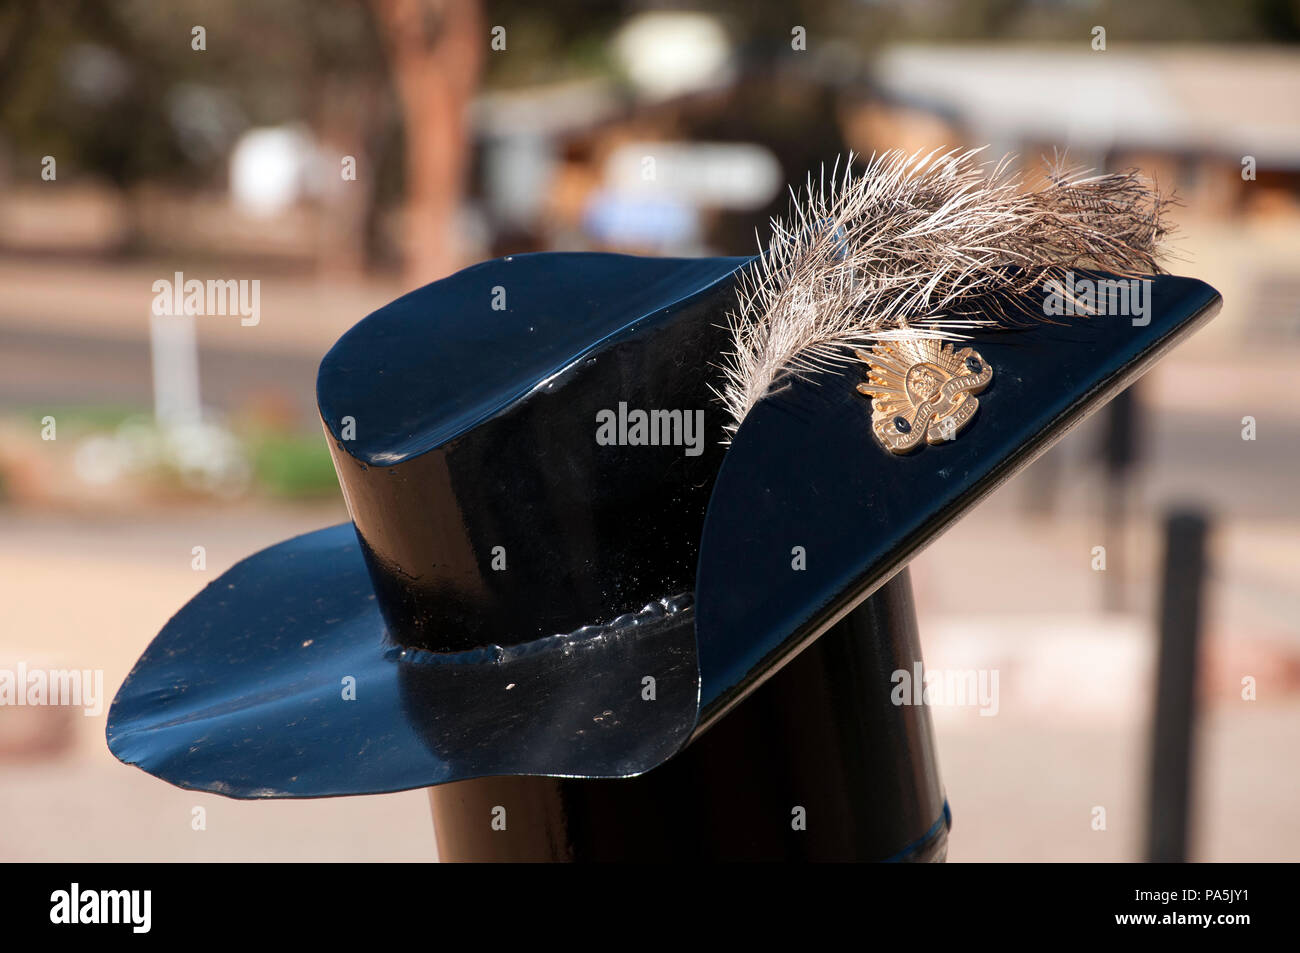 08b73523a40 Slouch Hat Stock Photos   Slouch Hat Stock Images - Alamy